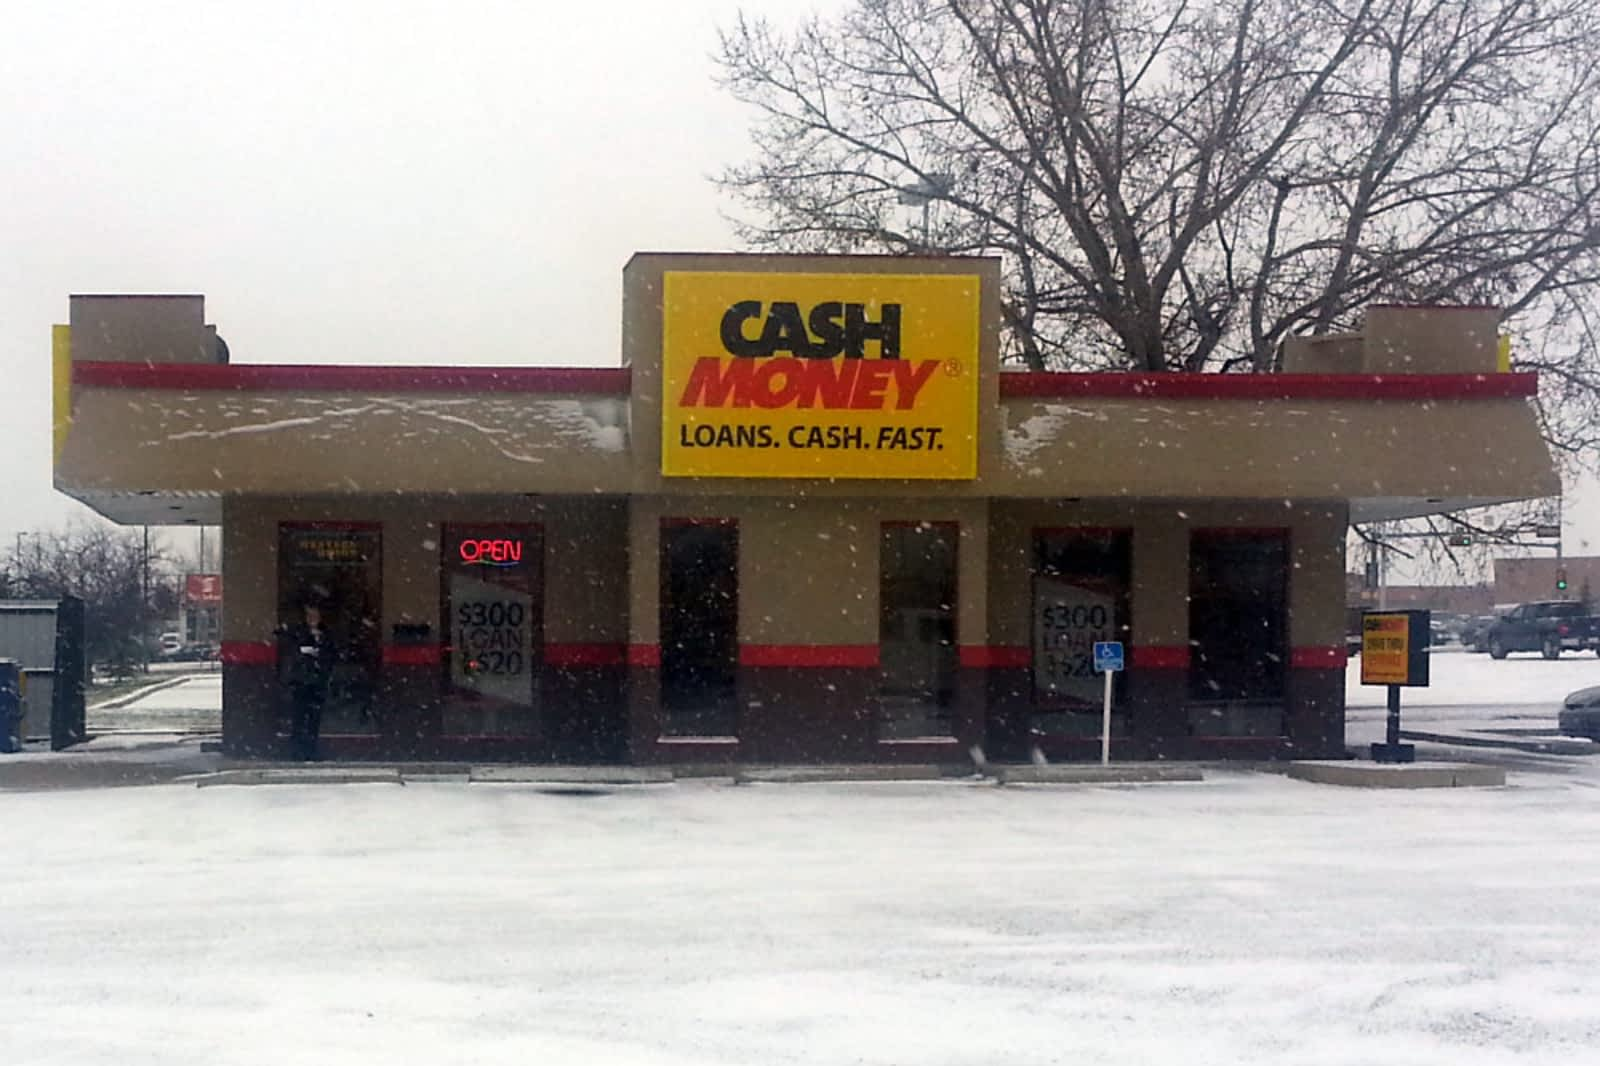 Payday loan in memphis tn image 6